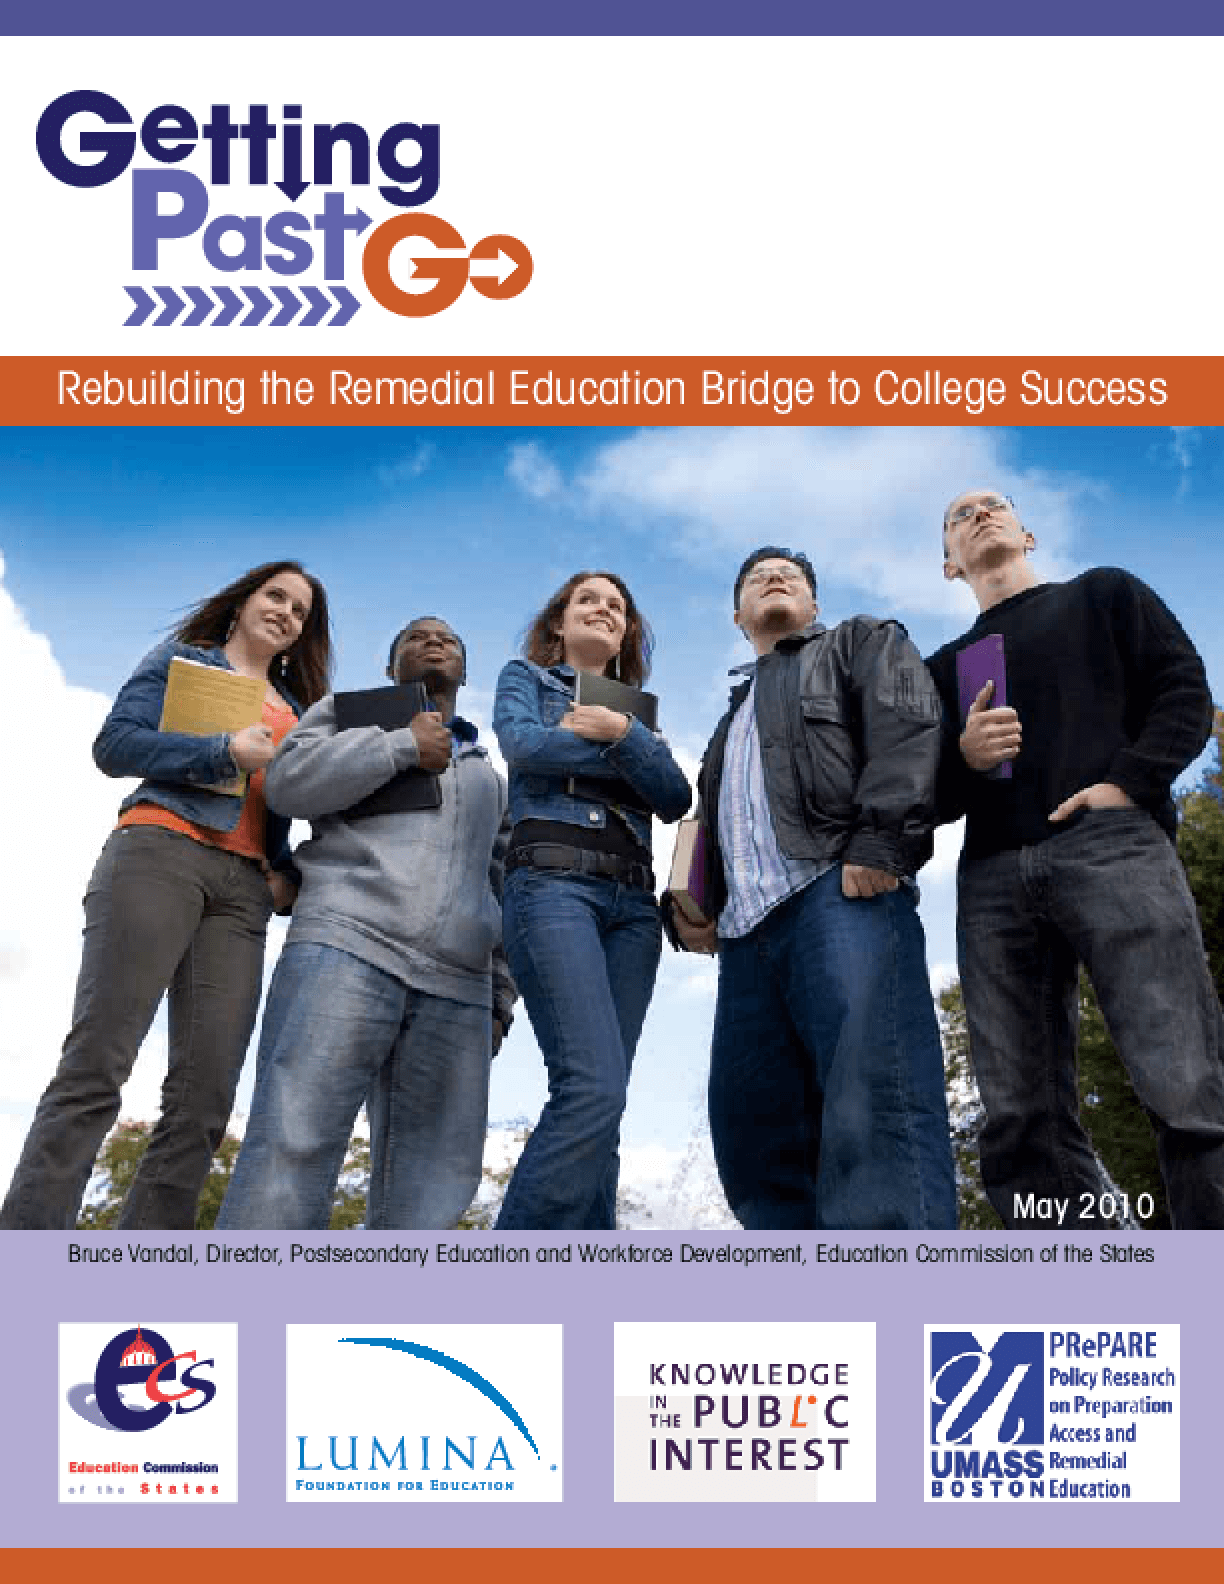 Getting Past Go: Building The Remedial Education Bridge To College Success